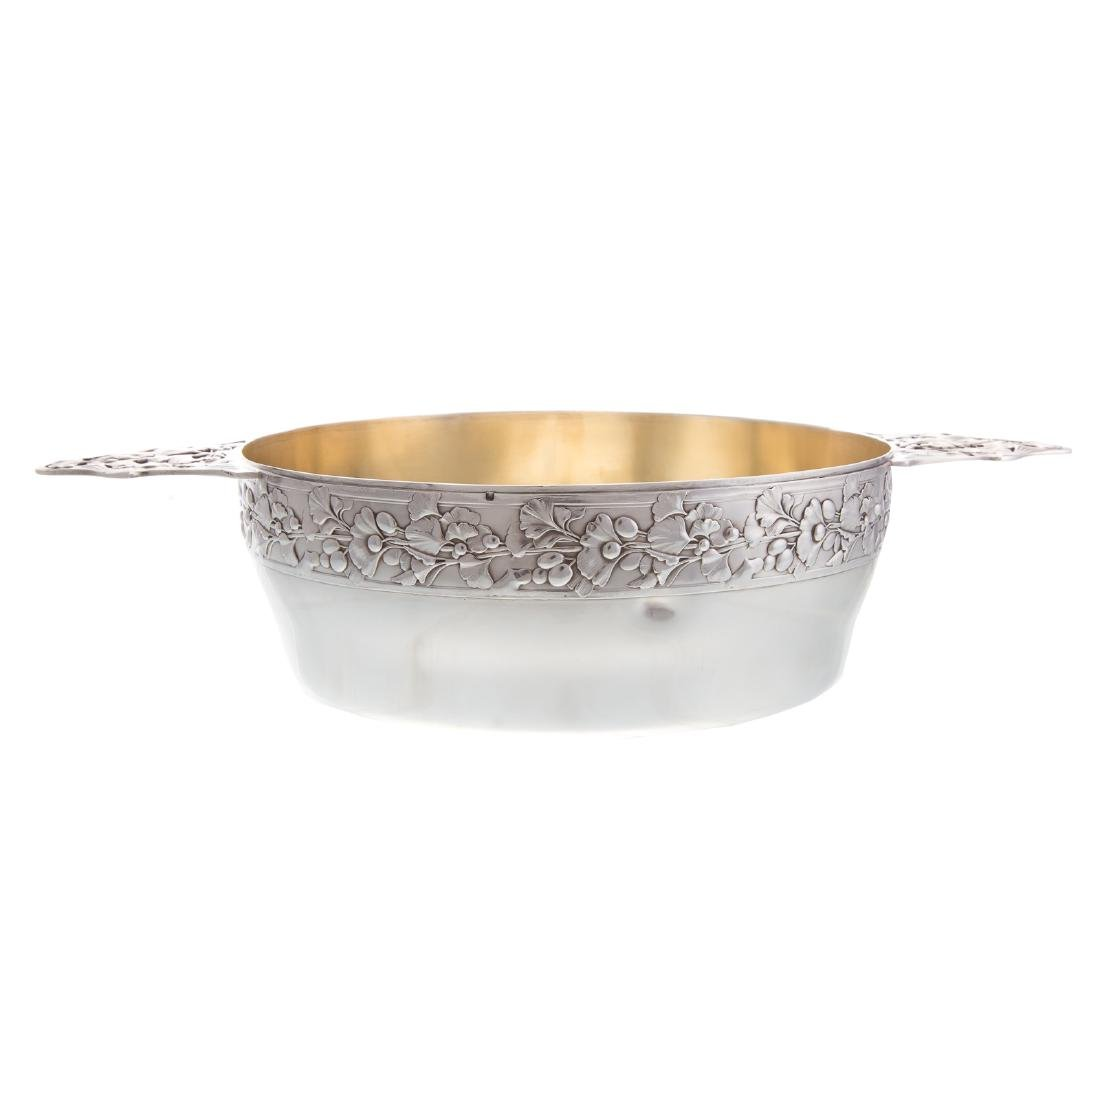 French silver serving bowl